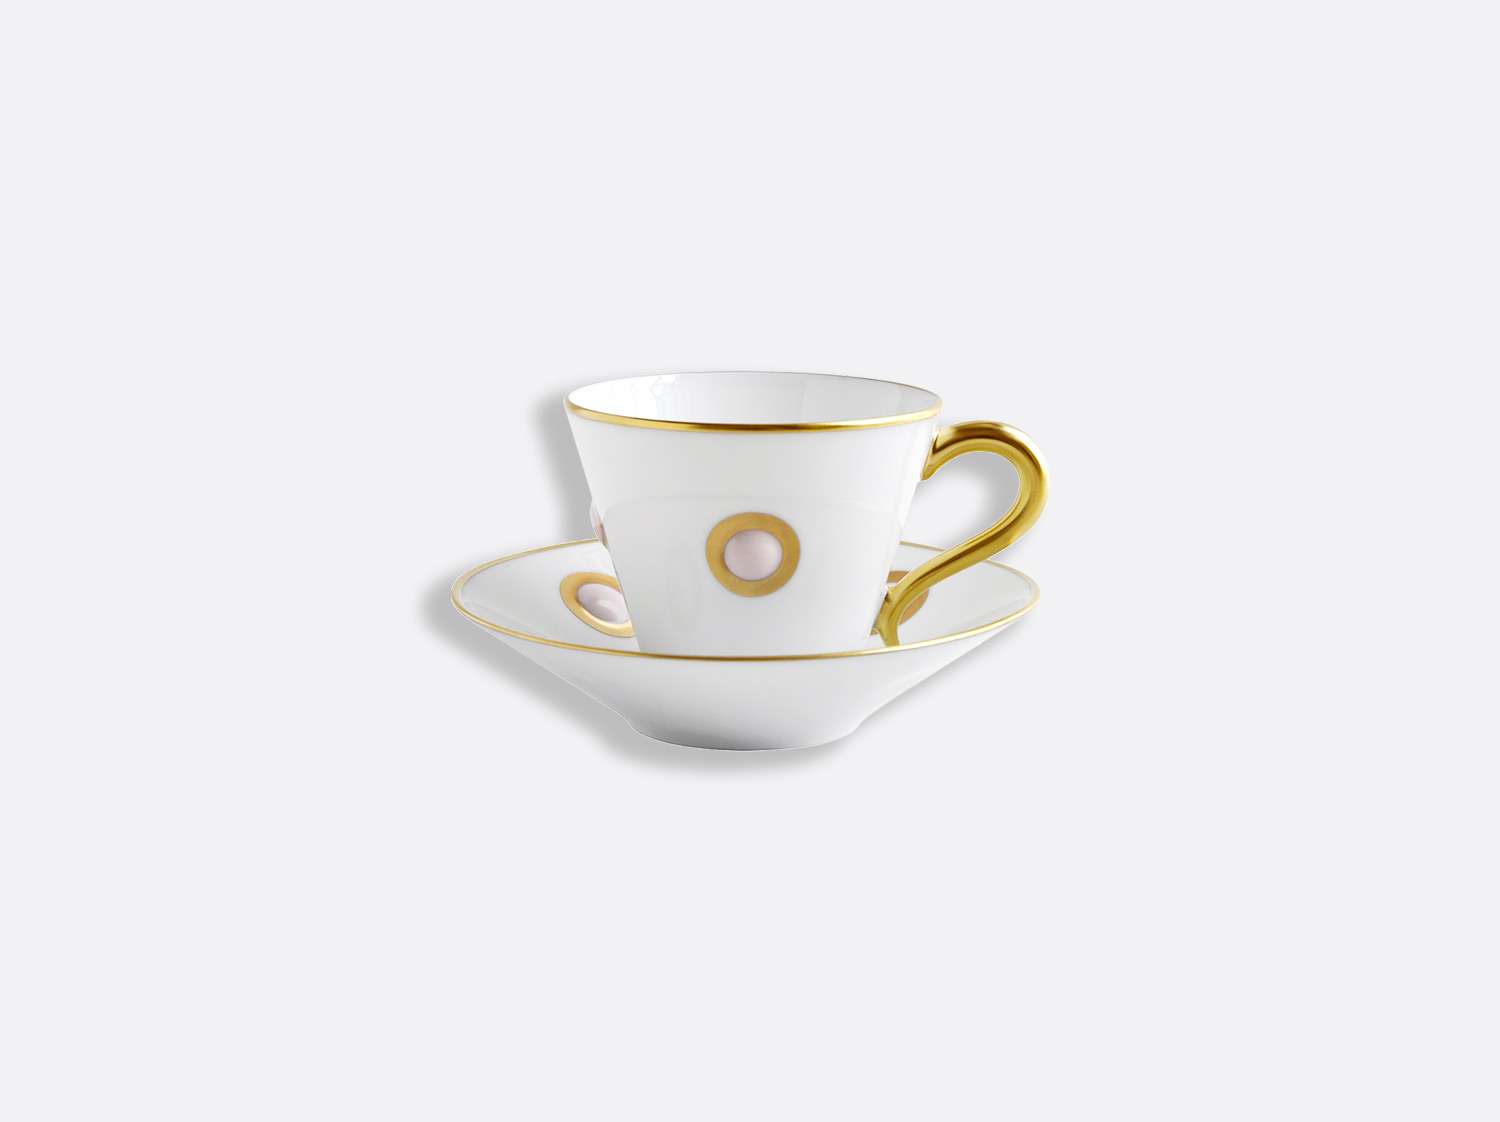 Tasse et soucoupe café 13 cl en porcelaine de la collection Ithaque rose Bernardaud